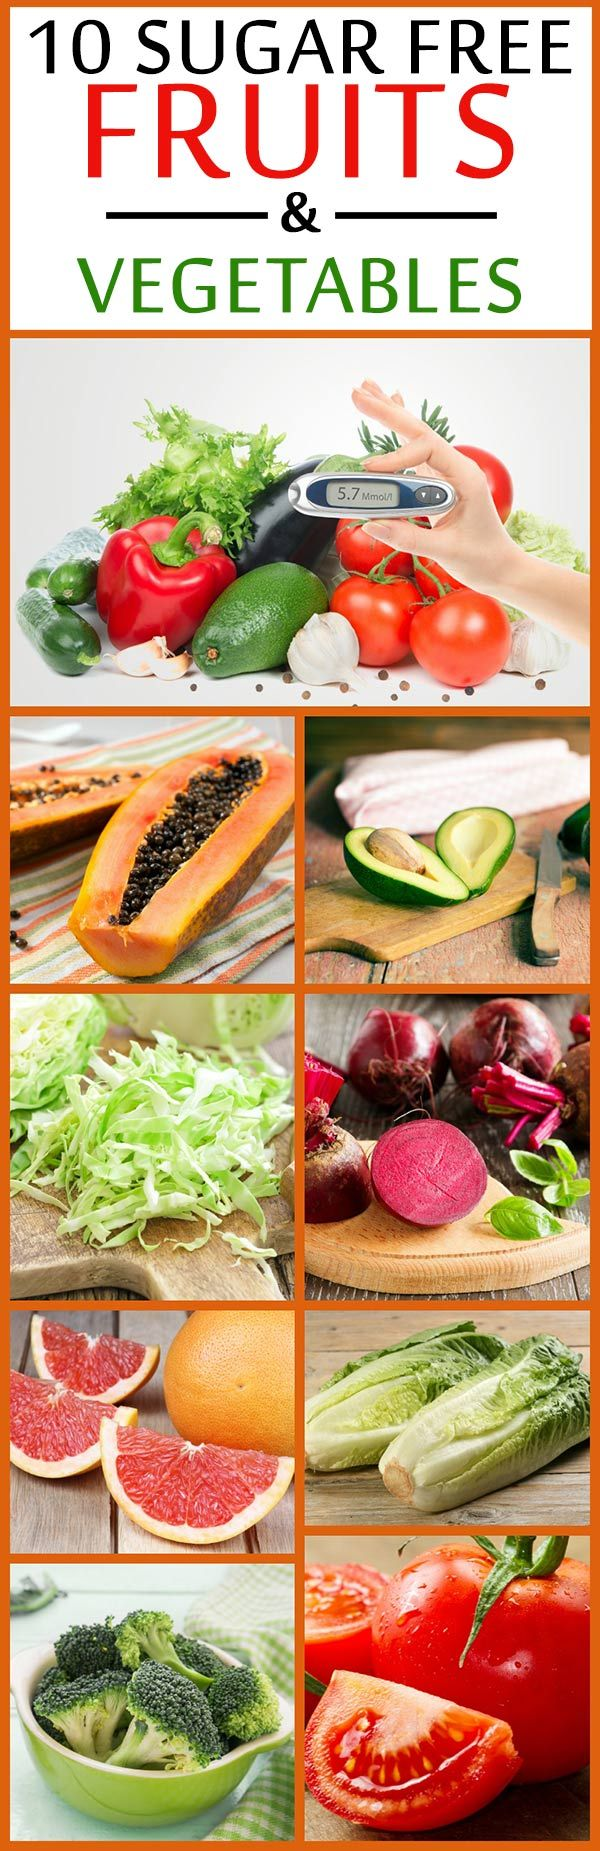 10 Sugar Free Fruits And Vegetables